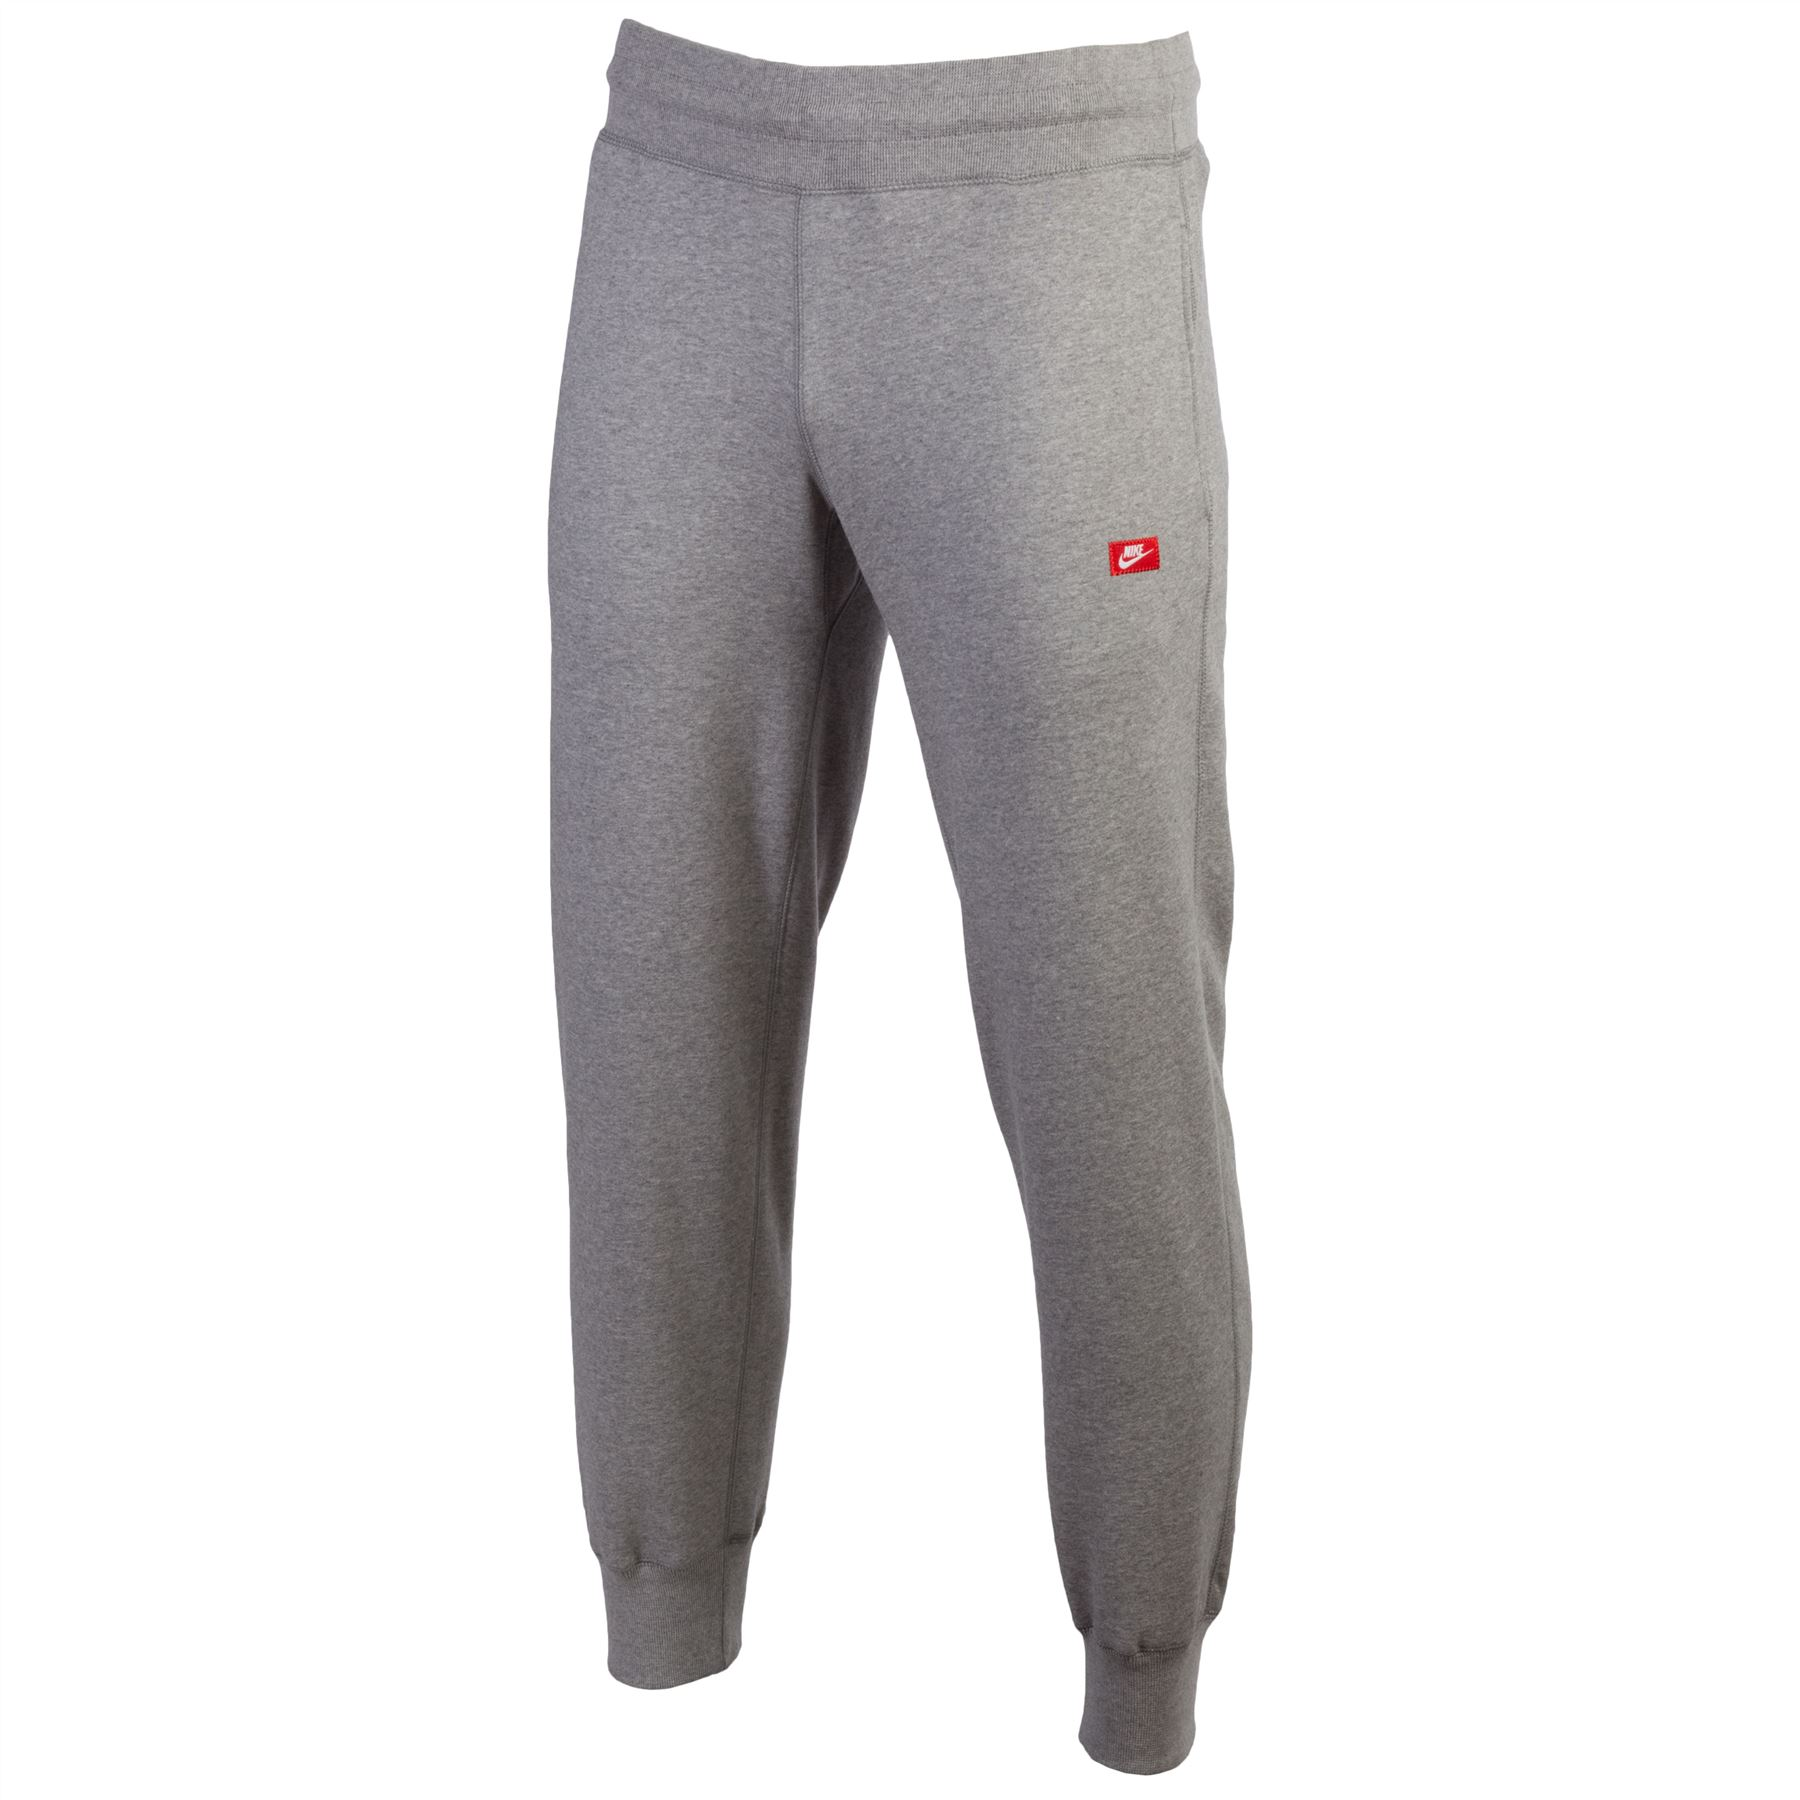 Shop from our huge selection of men's tracksuit bottoms at discounted prices. We have 's of track pants, sweatpants & slim fit joggers from top sports brands like adidas, Under Armour, Puma, Canterbury, Nike at sale prices. Plus you'll also find official training pants from Chelsea, Man .